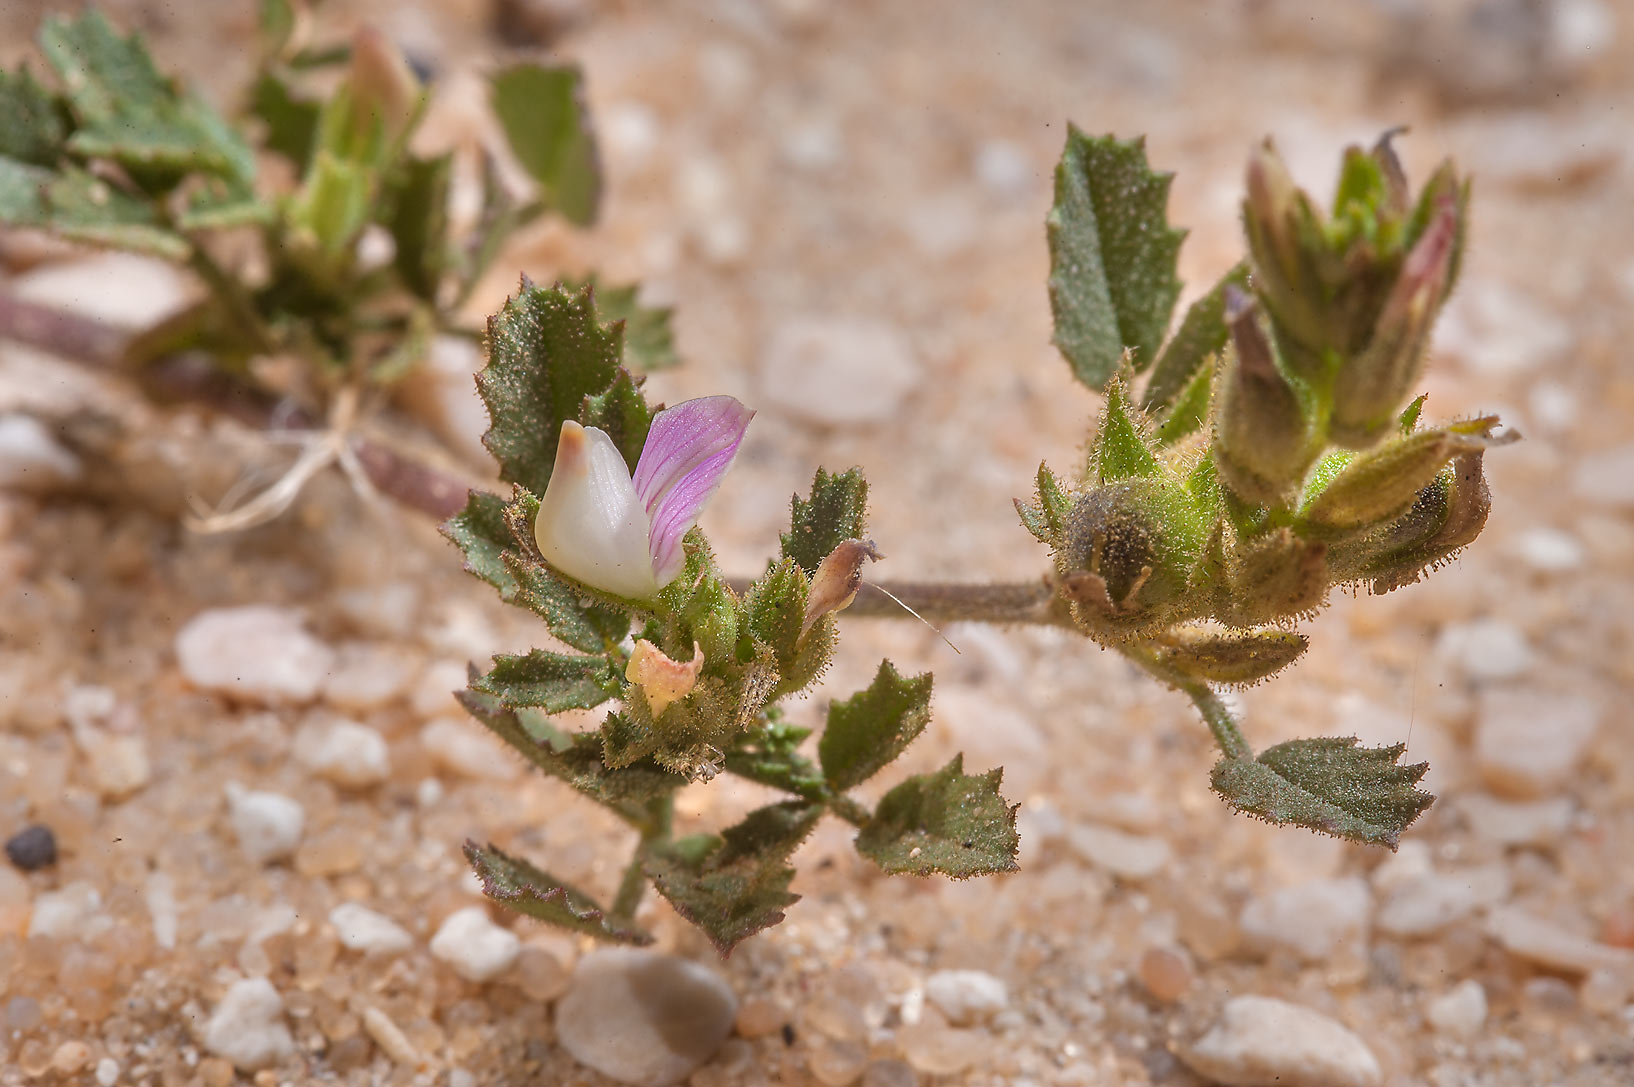 Small Restharrow (Ononis reclinata) at entrance of Umm Bab in south-western Qatar